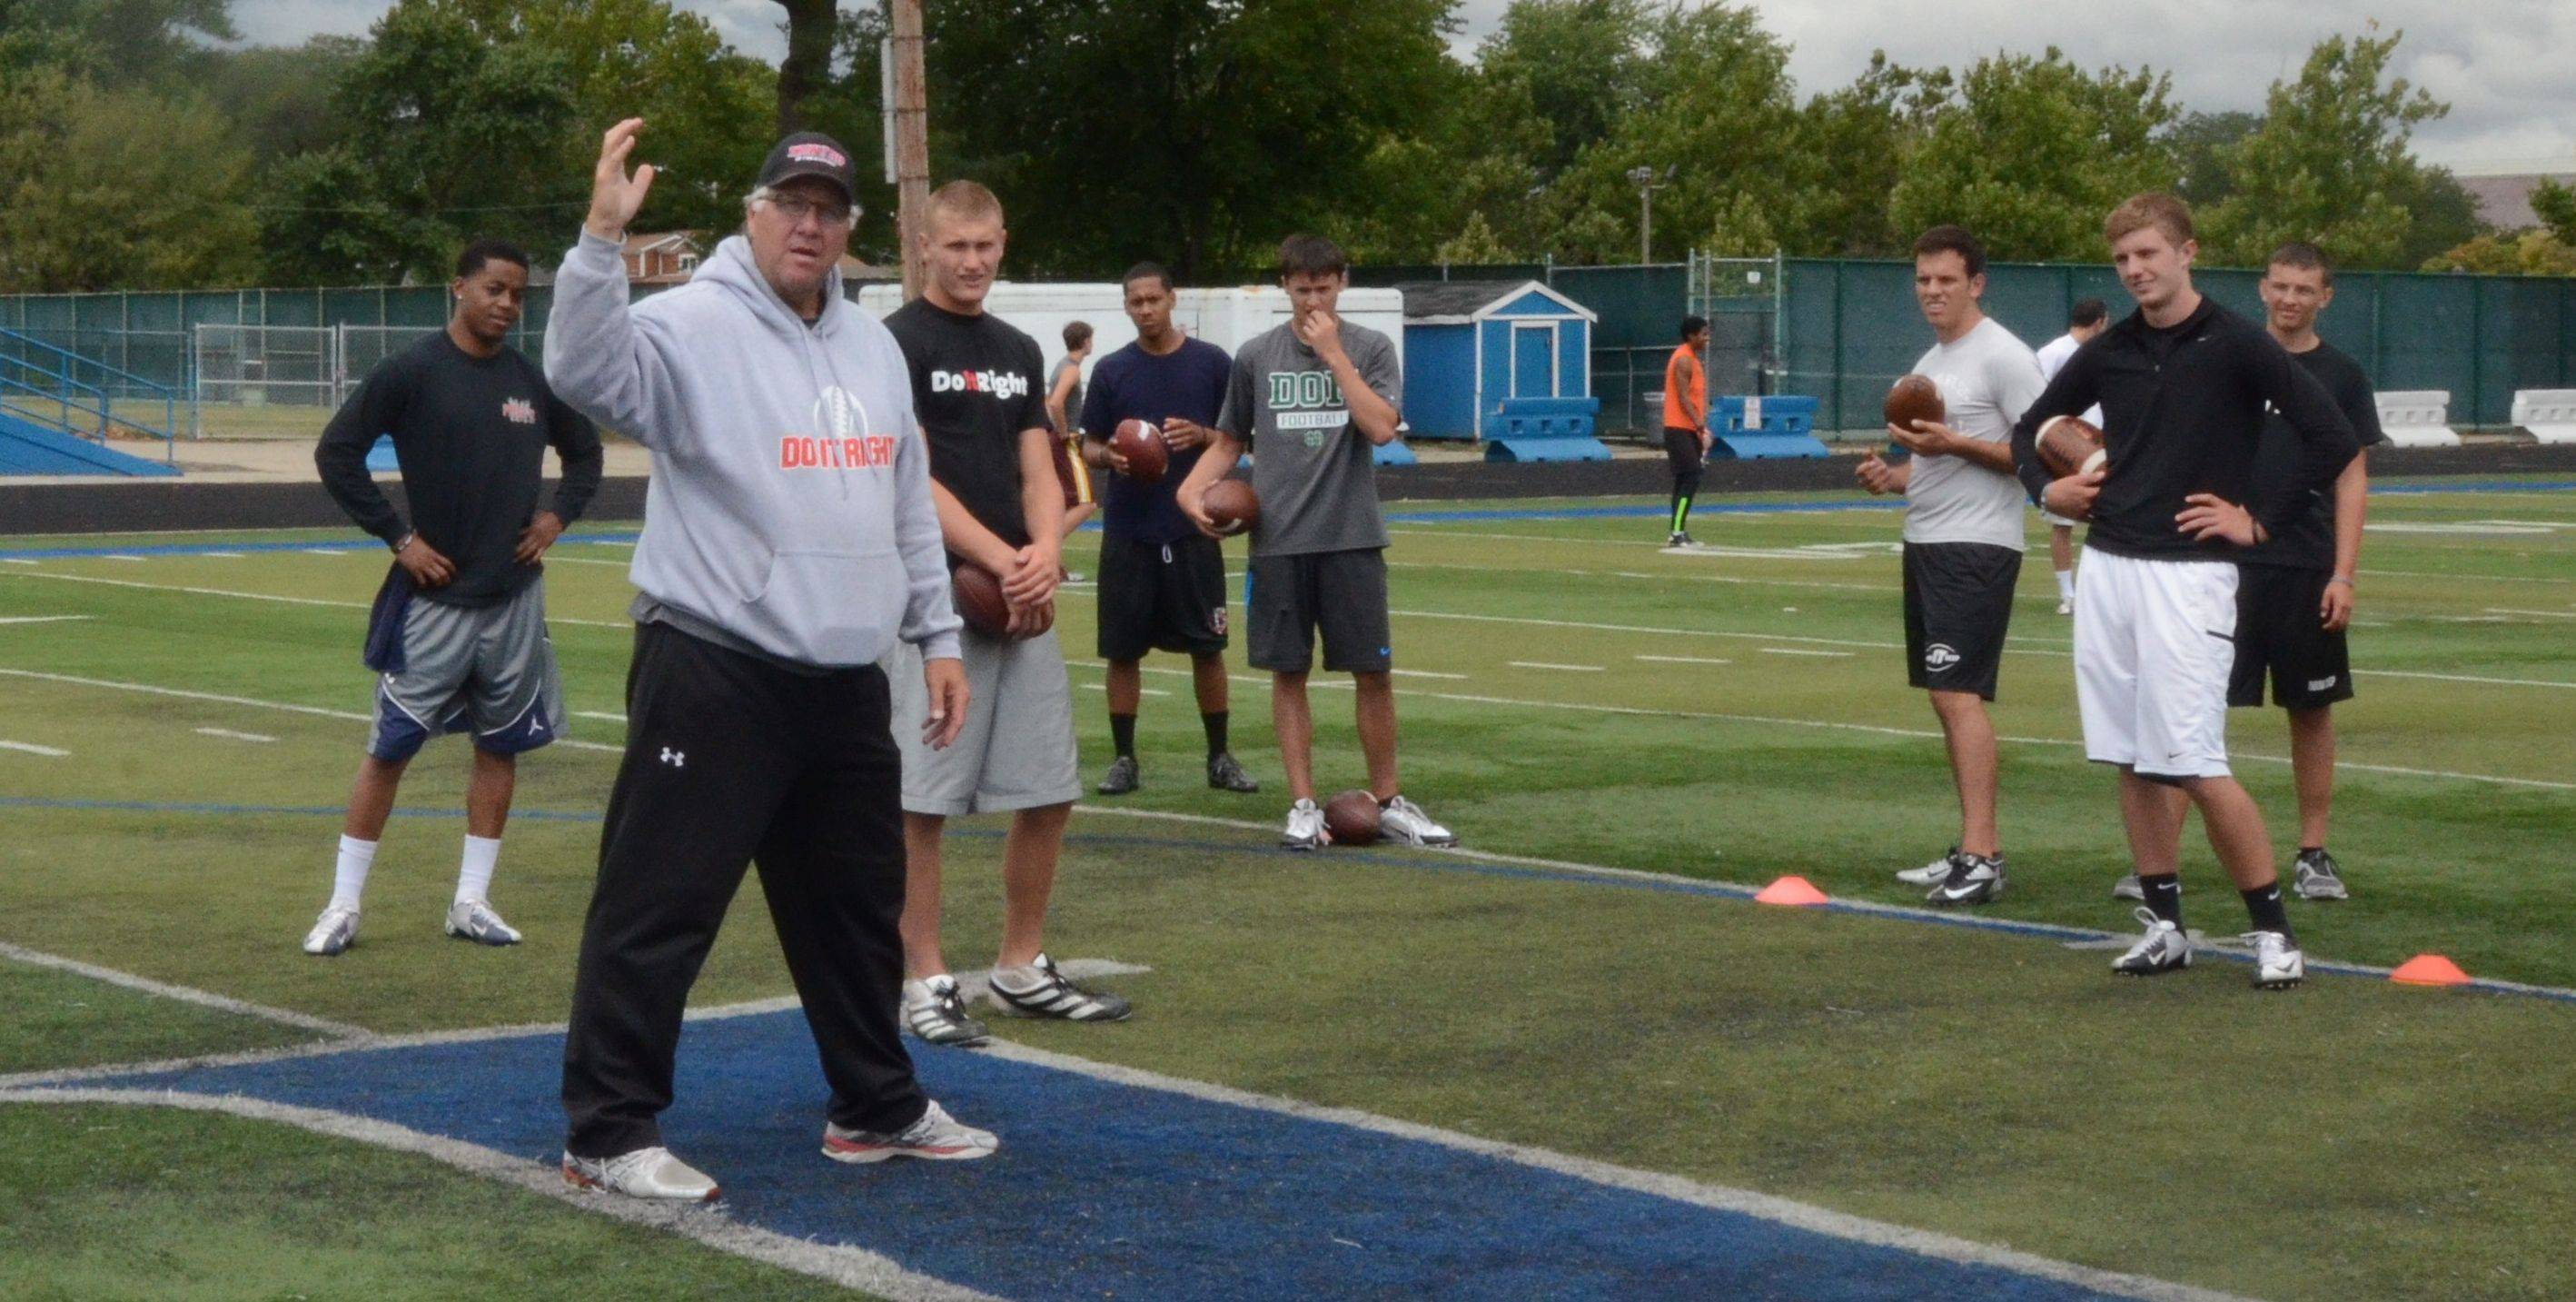 Quarterbacks coach Jeff Christensen, here working with high school and college-bound players, has received high praise for his training camp results. Matt Blanchard of the Bears credits Christensen with getting him to the next level.